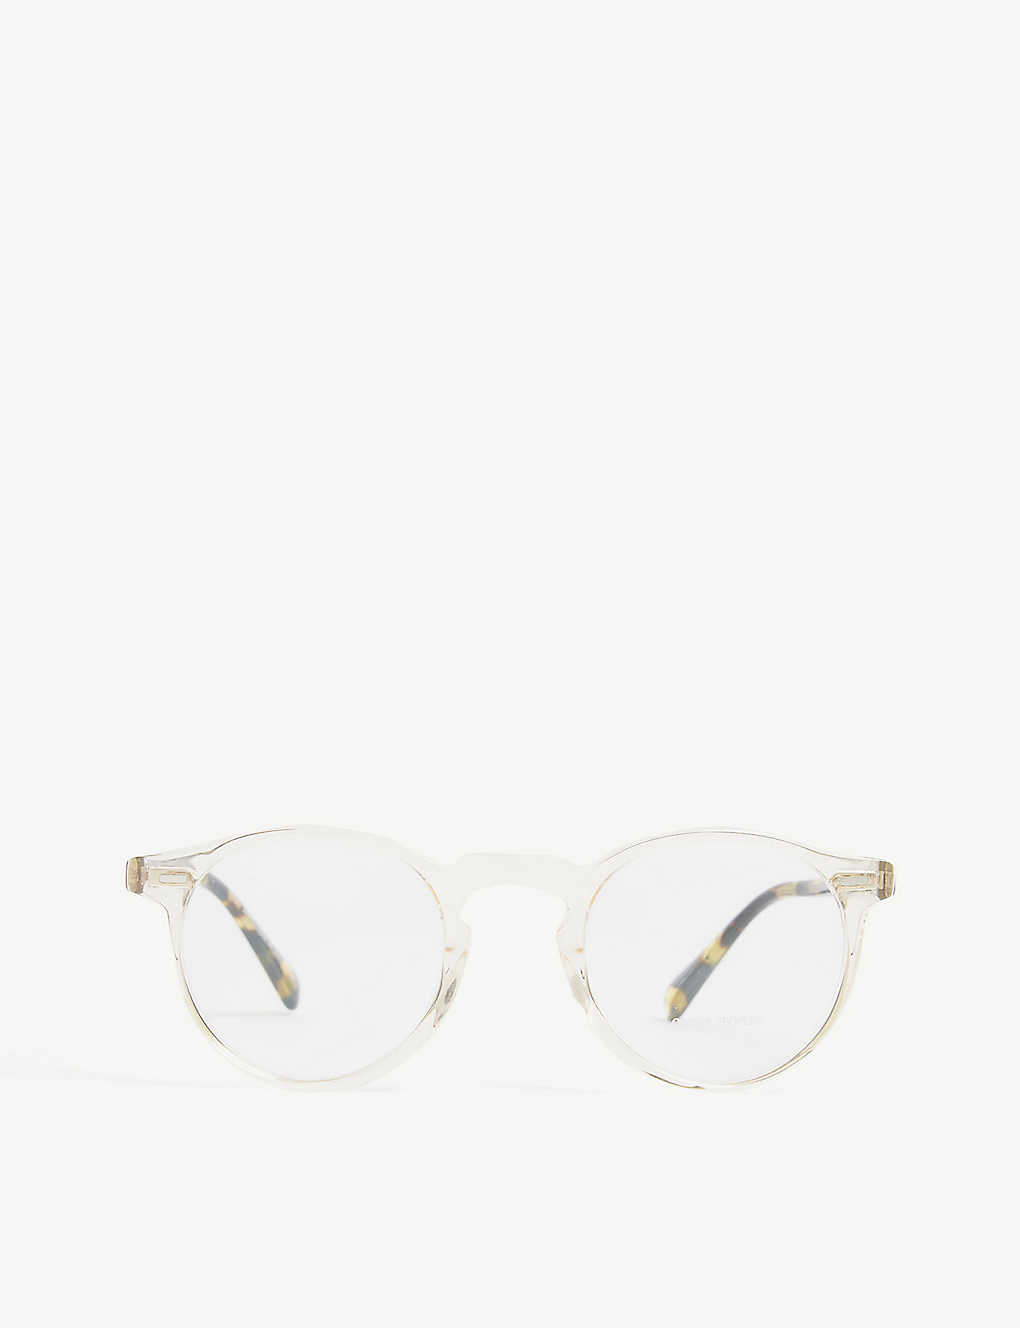 OLIVER PEOPLES: Gregory Peck round-frame optical glasses